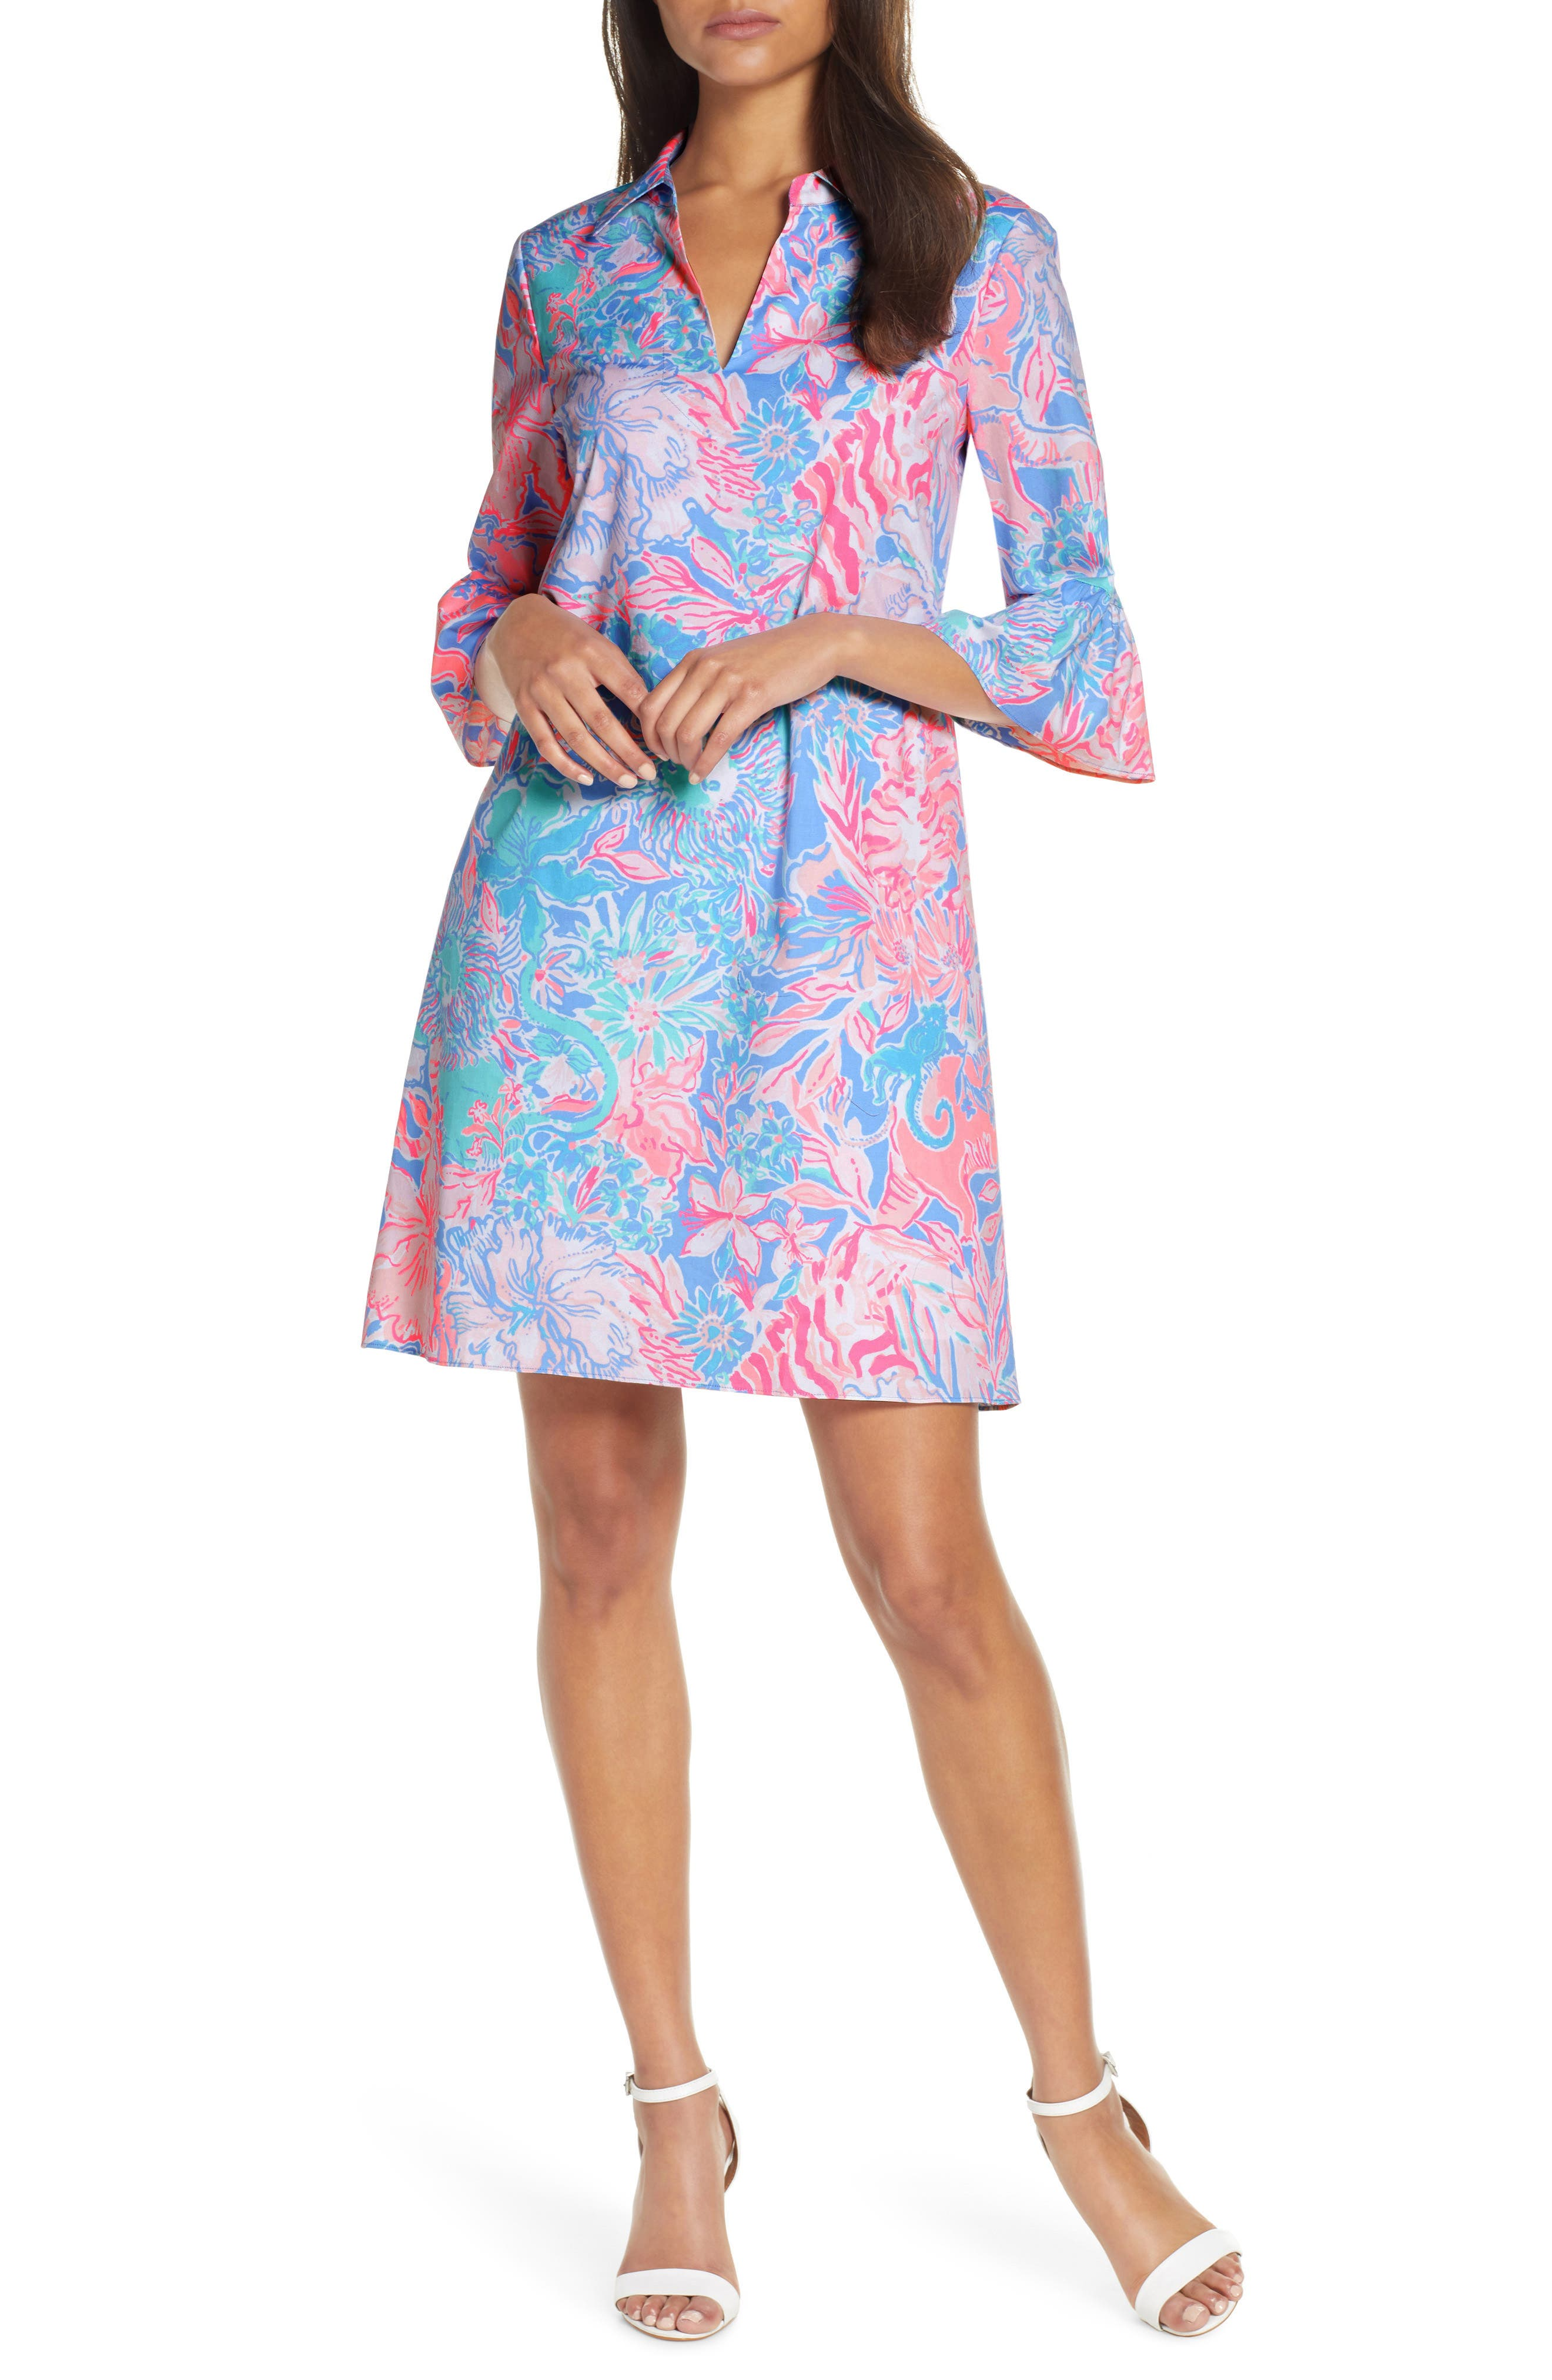 Lilly Pulitzer Ginger Floral Print Stretch Cotton Shift Dress, Pink